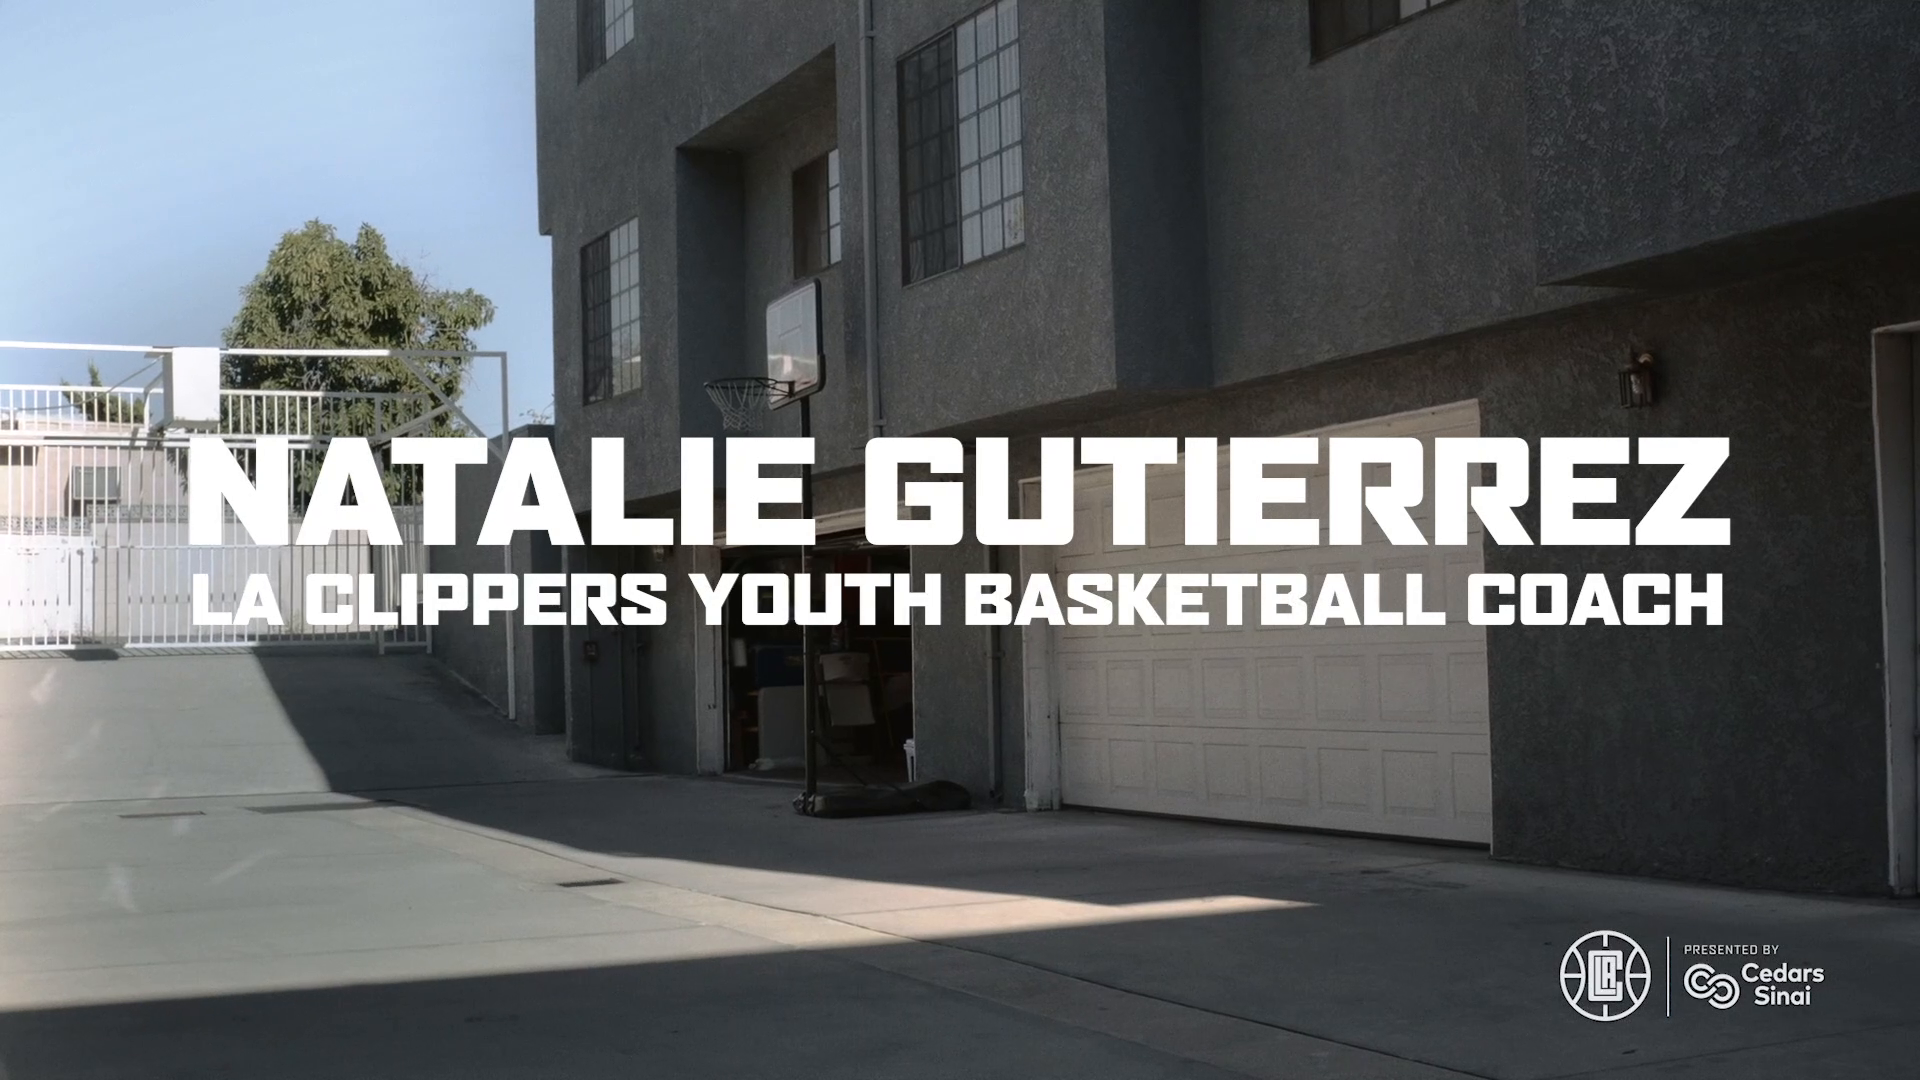 Natalie Gutierrez, LA Clippers Youth Basketball Coach